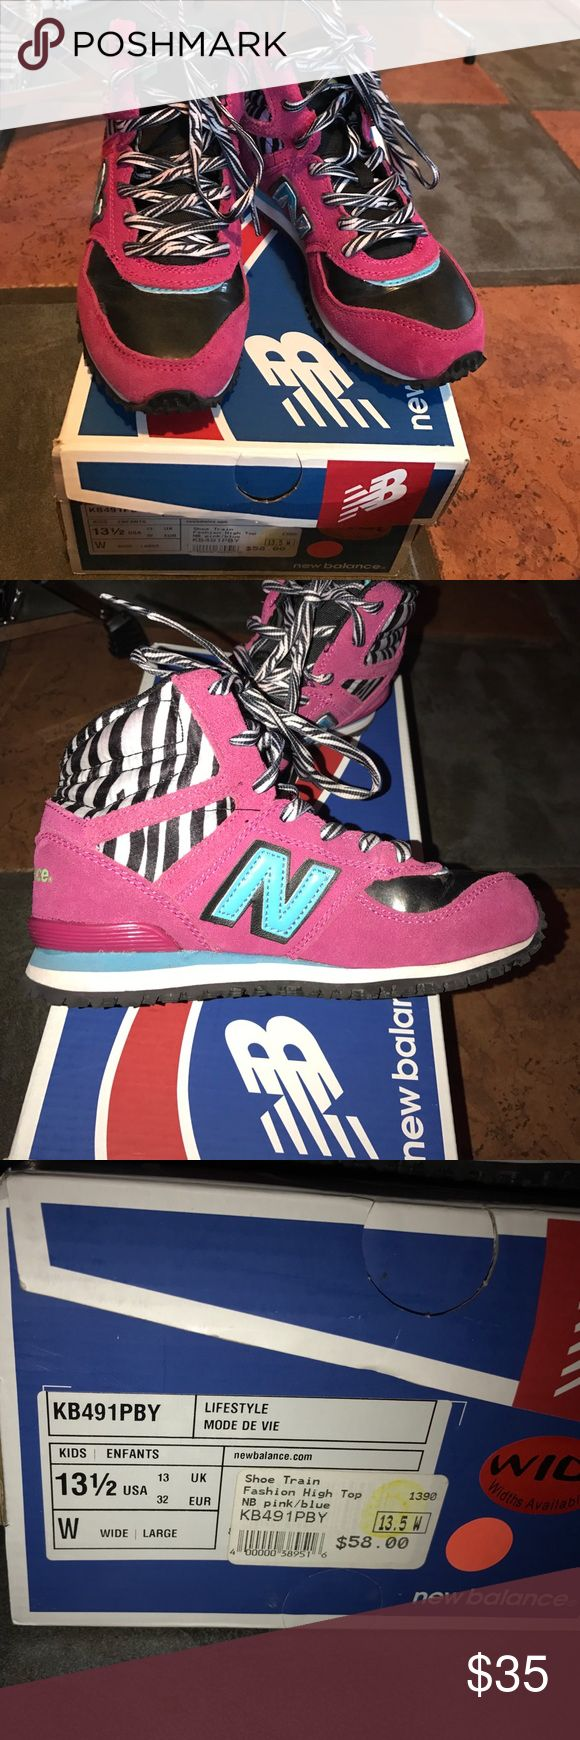 New balance girls high tops size 13.5 wide new Brand new New balance high top sneakers size 13.5 wide. New Balance Shoes Sneakers